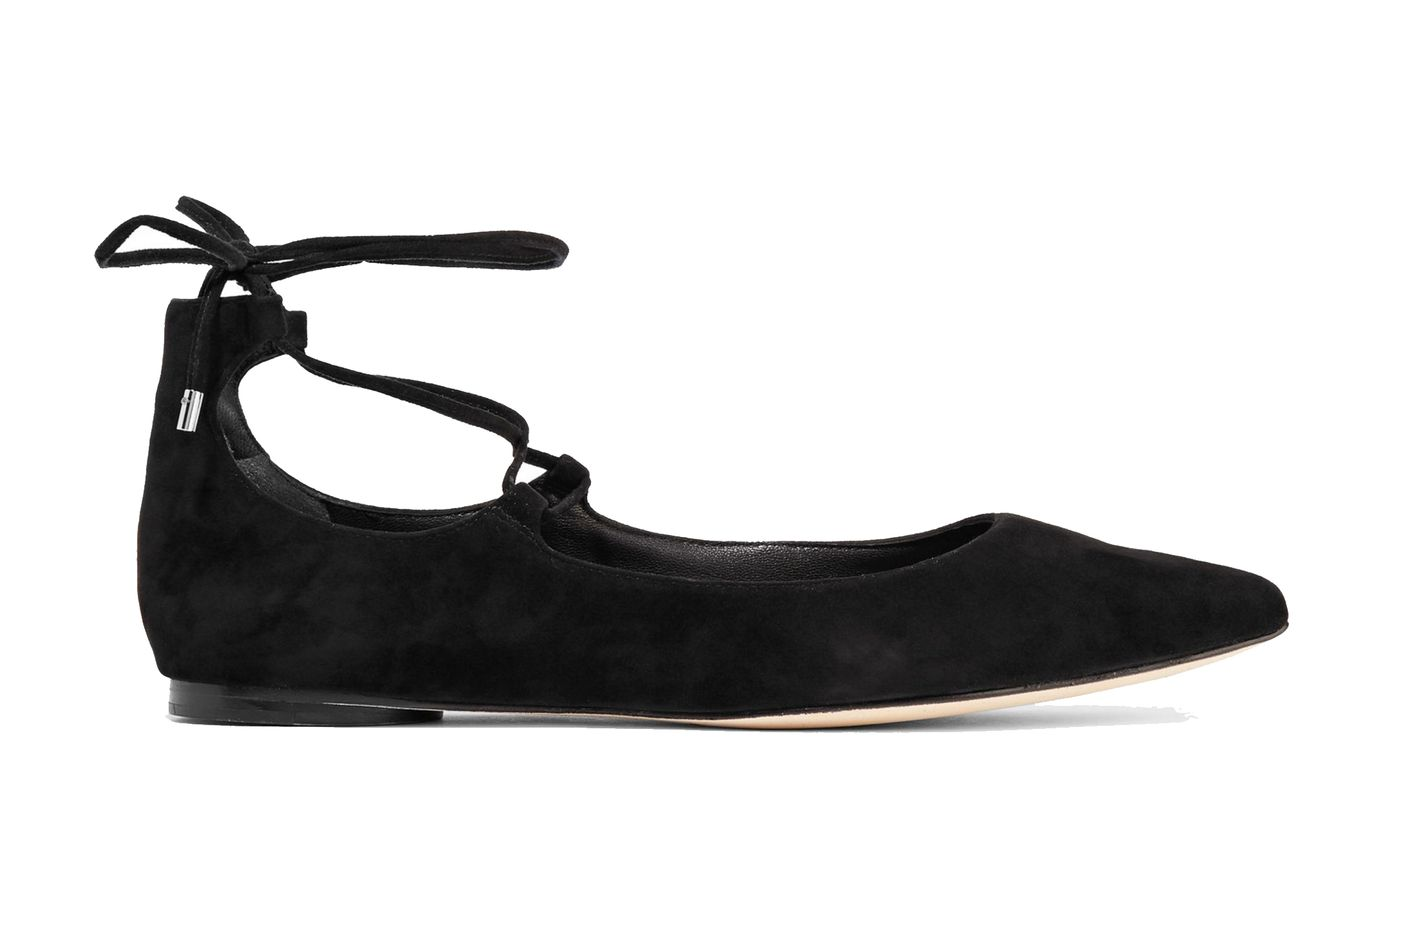 Sigerson Morrison Viata Lace-Up Suede Flats at The Outnet